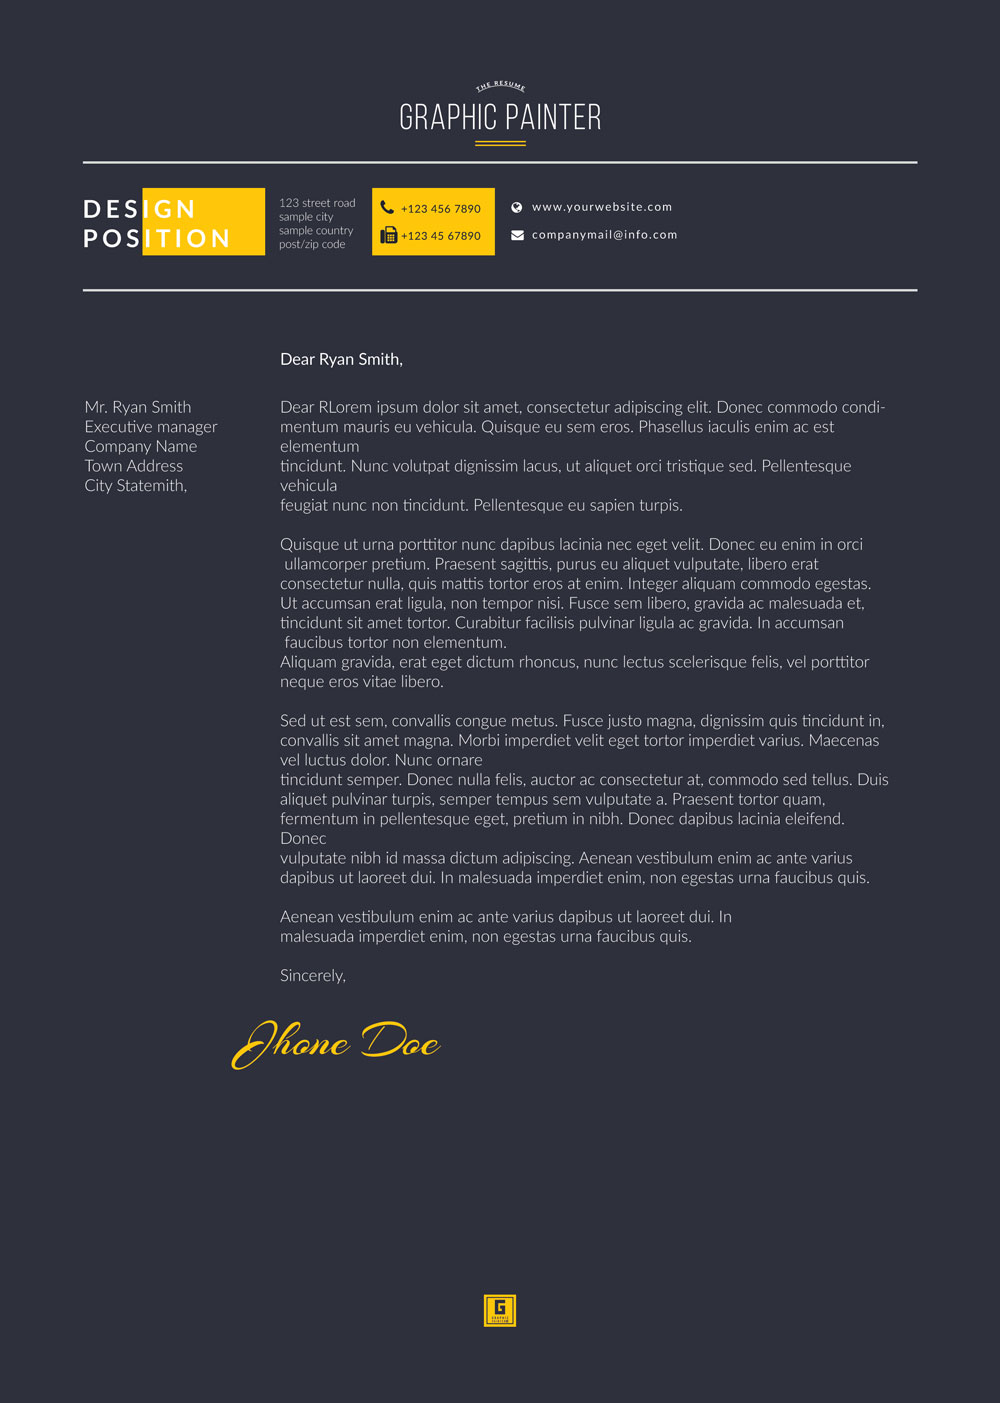 Free-Dark-&-Light-PSD-&-Word-Resume-Template,-Cover-Letter-&-Portfolio-Design (4)